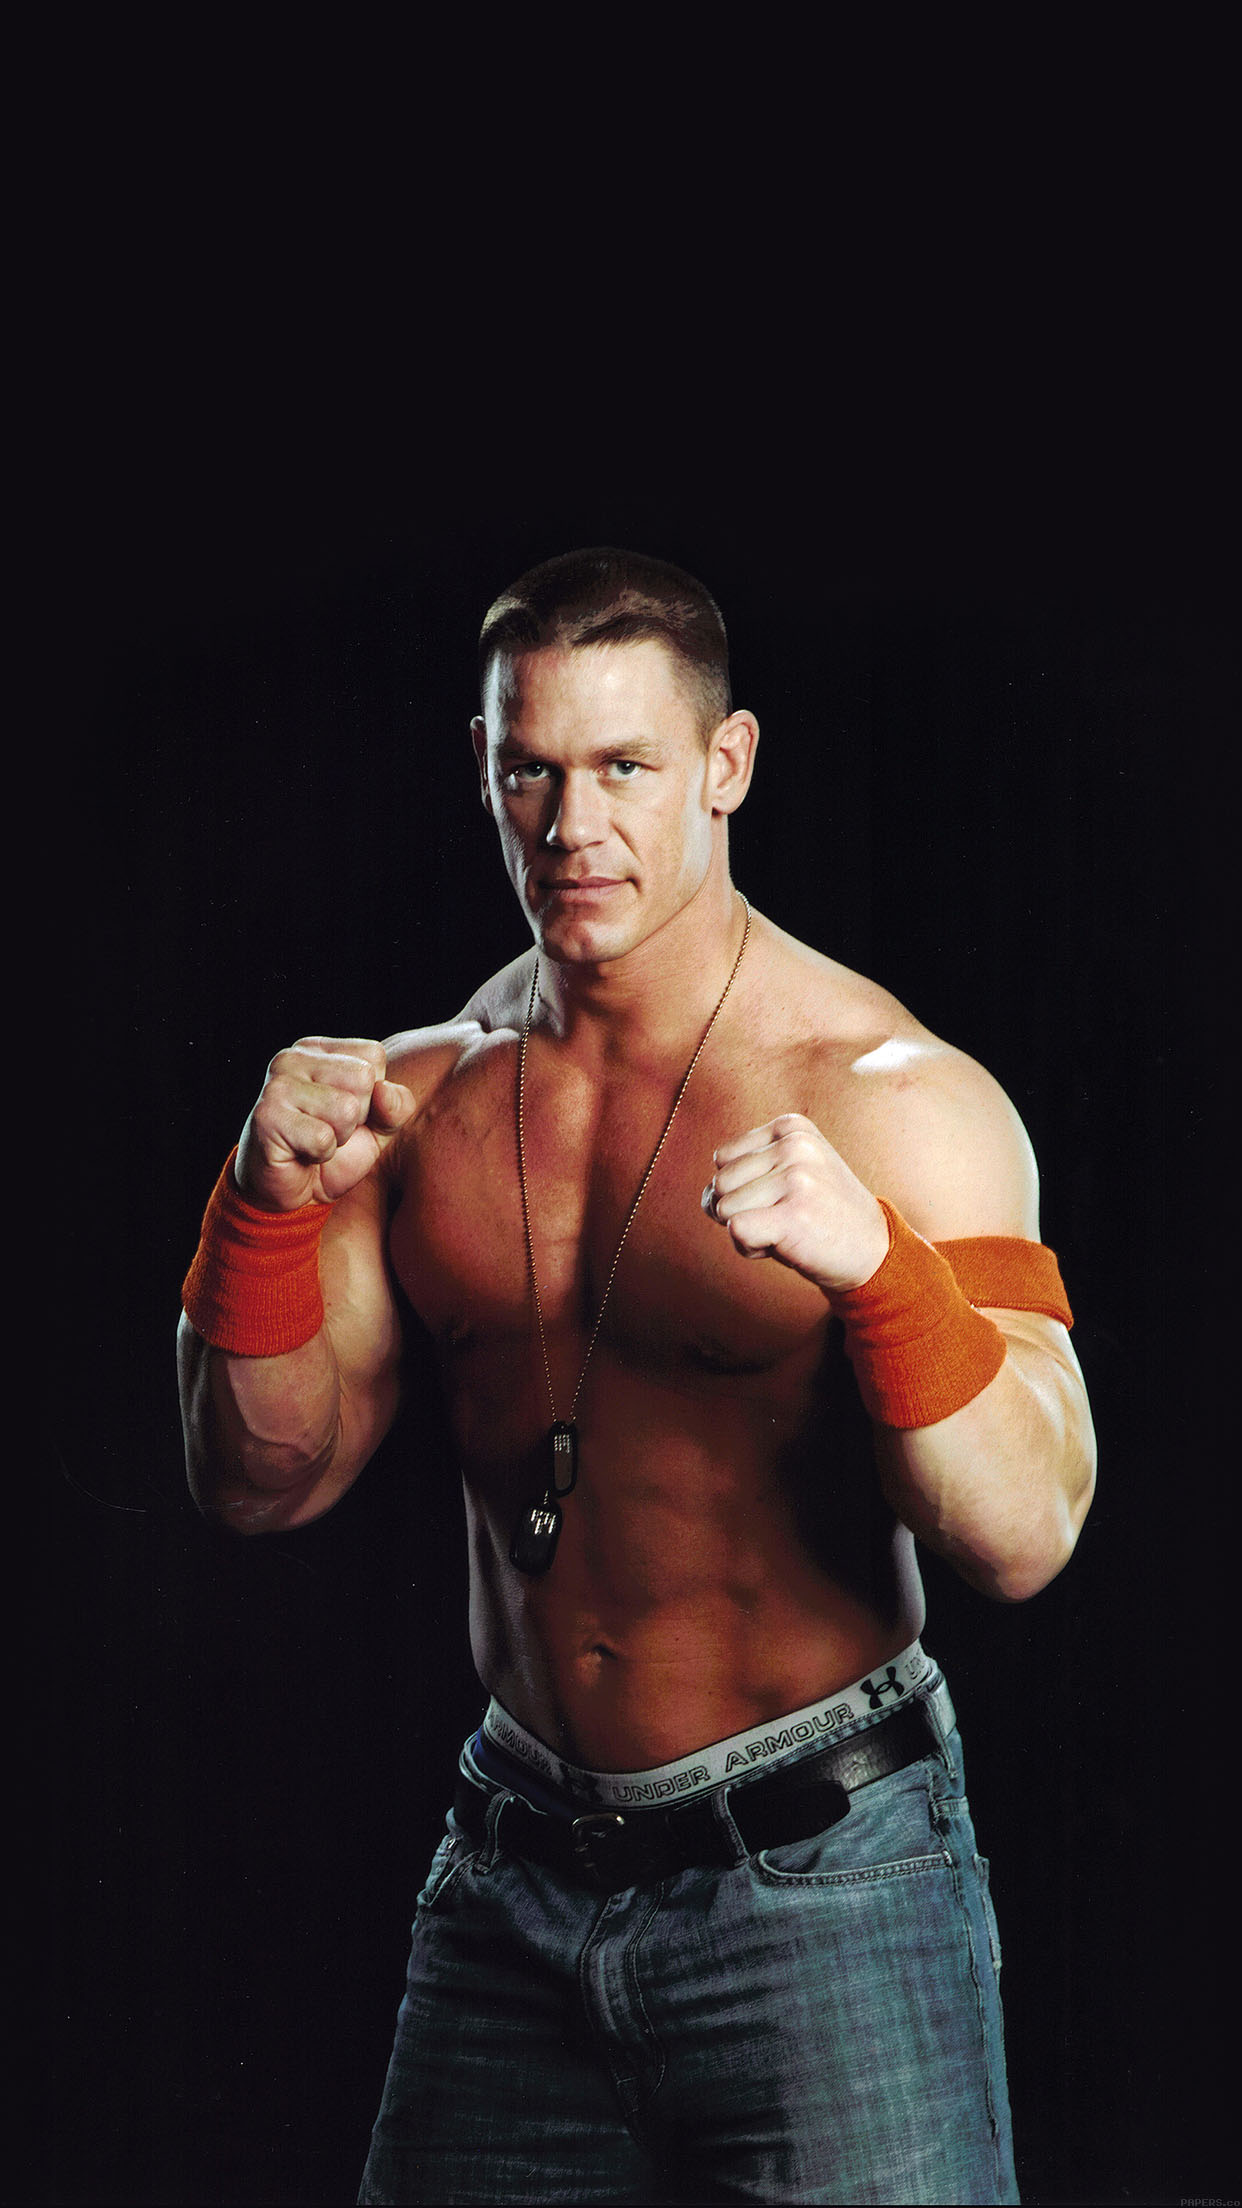 Boxing Iphone Wallpaper Hb01 Wallpaper John Cena Wwe Man Papers Co